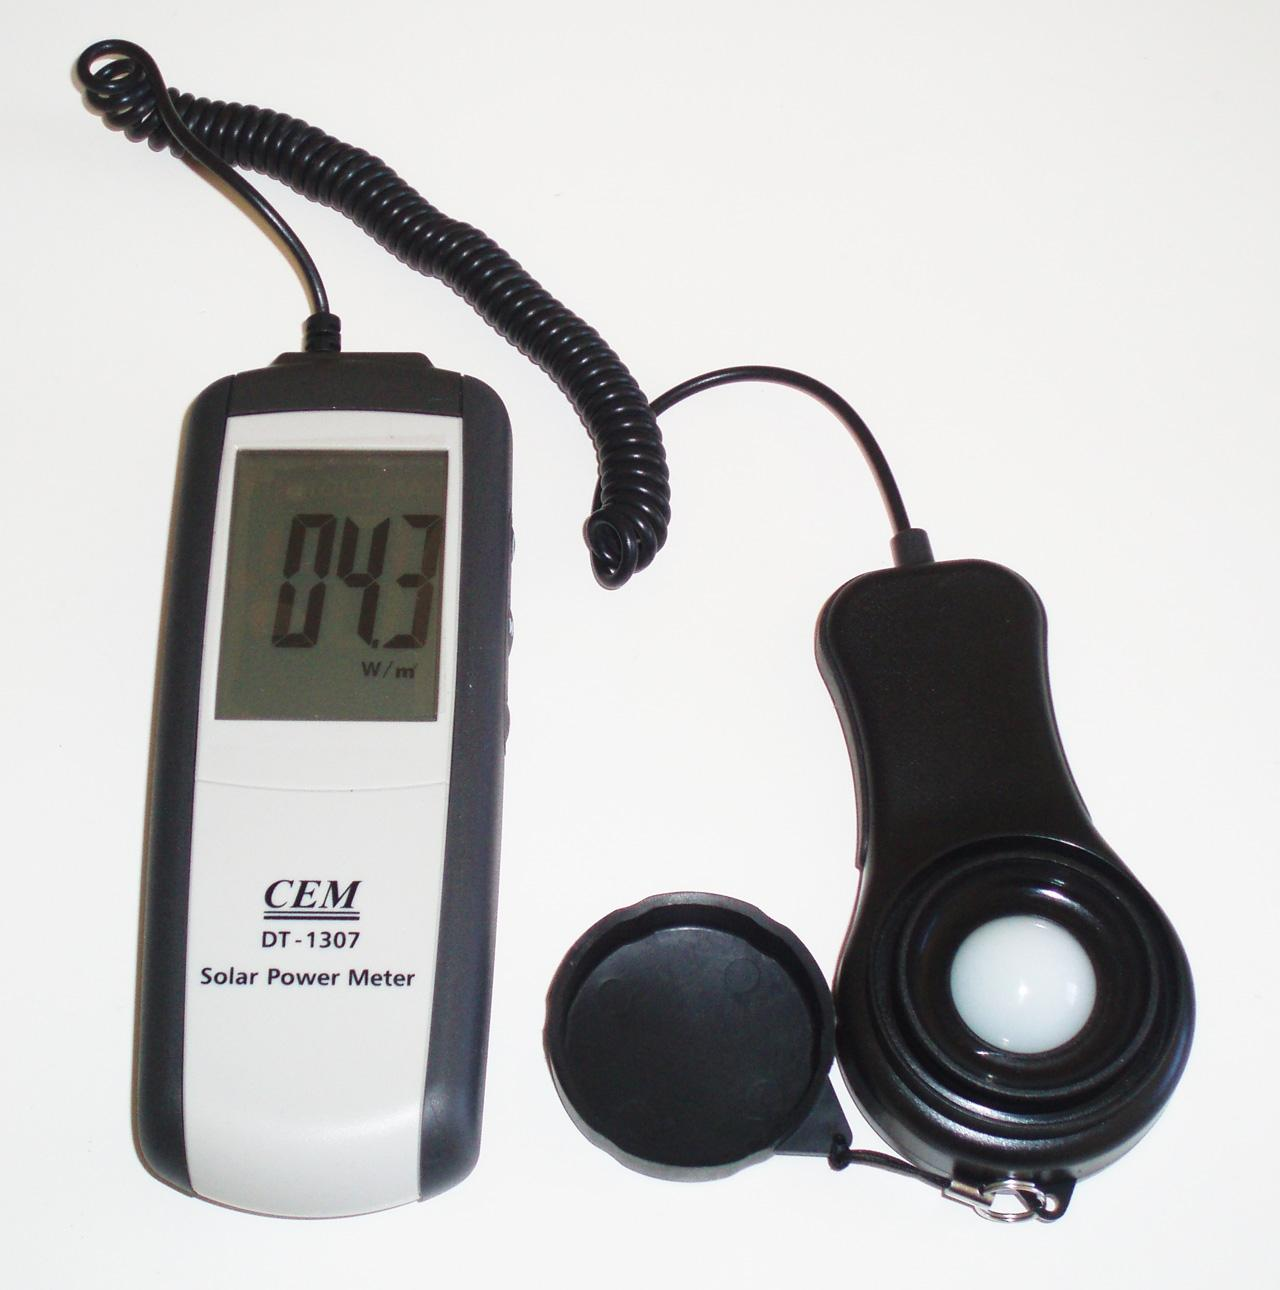 DT-1307 Solar Power Sunlight Meter